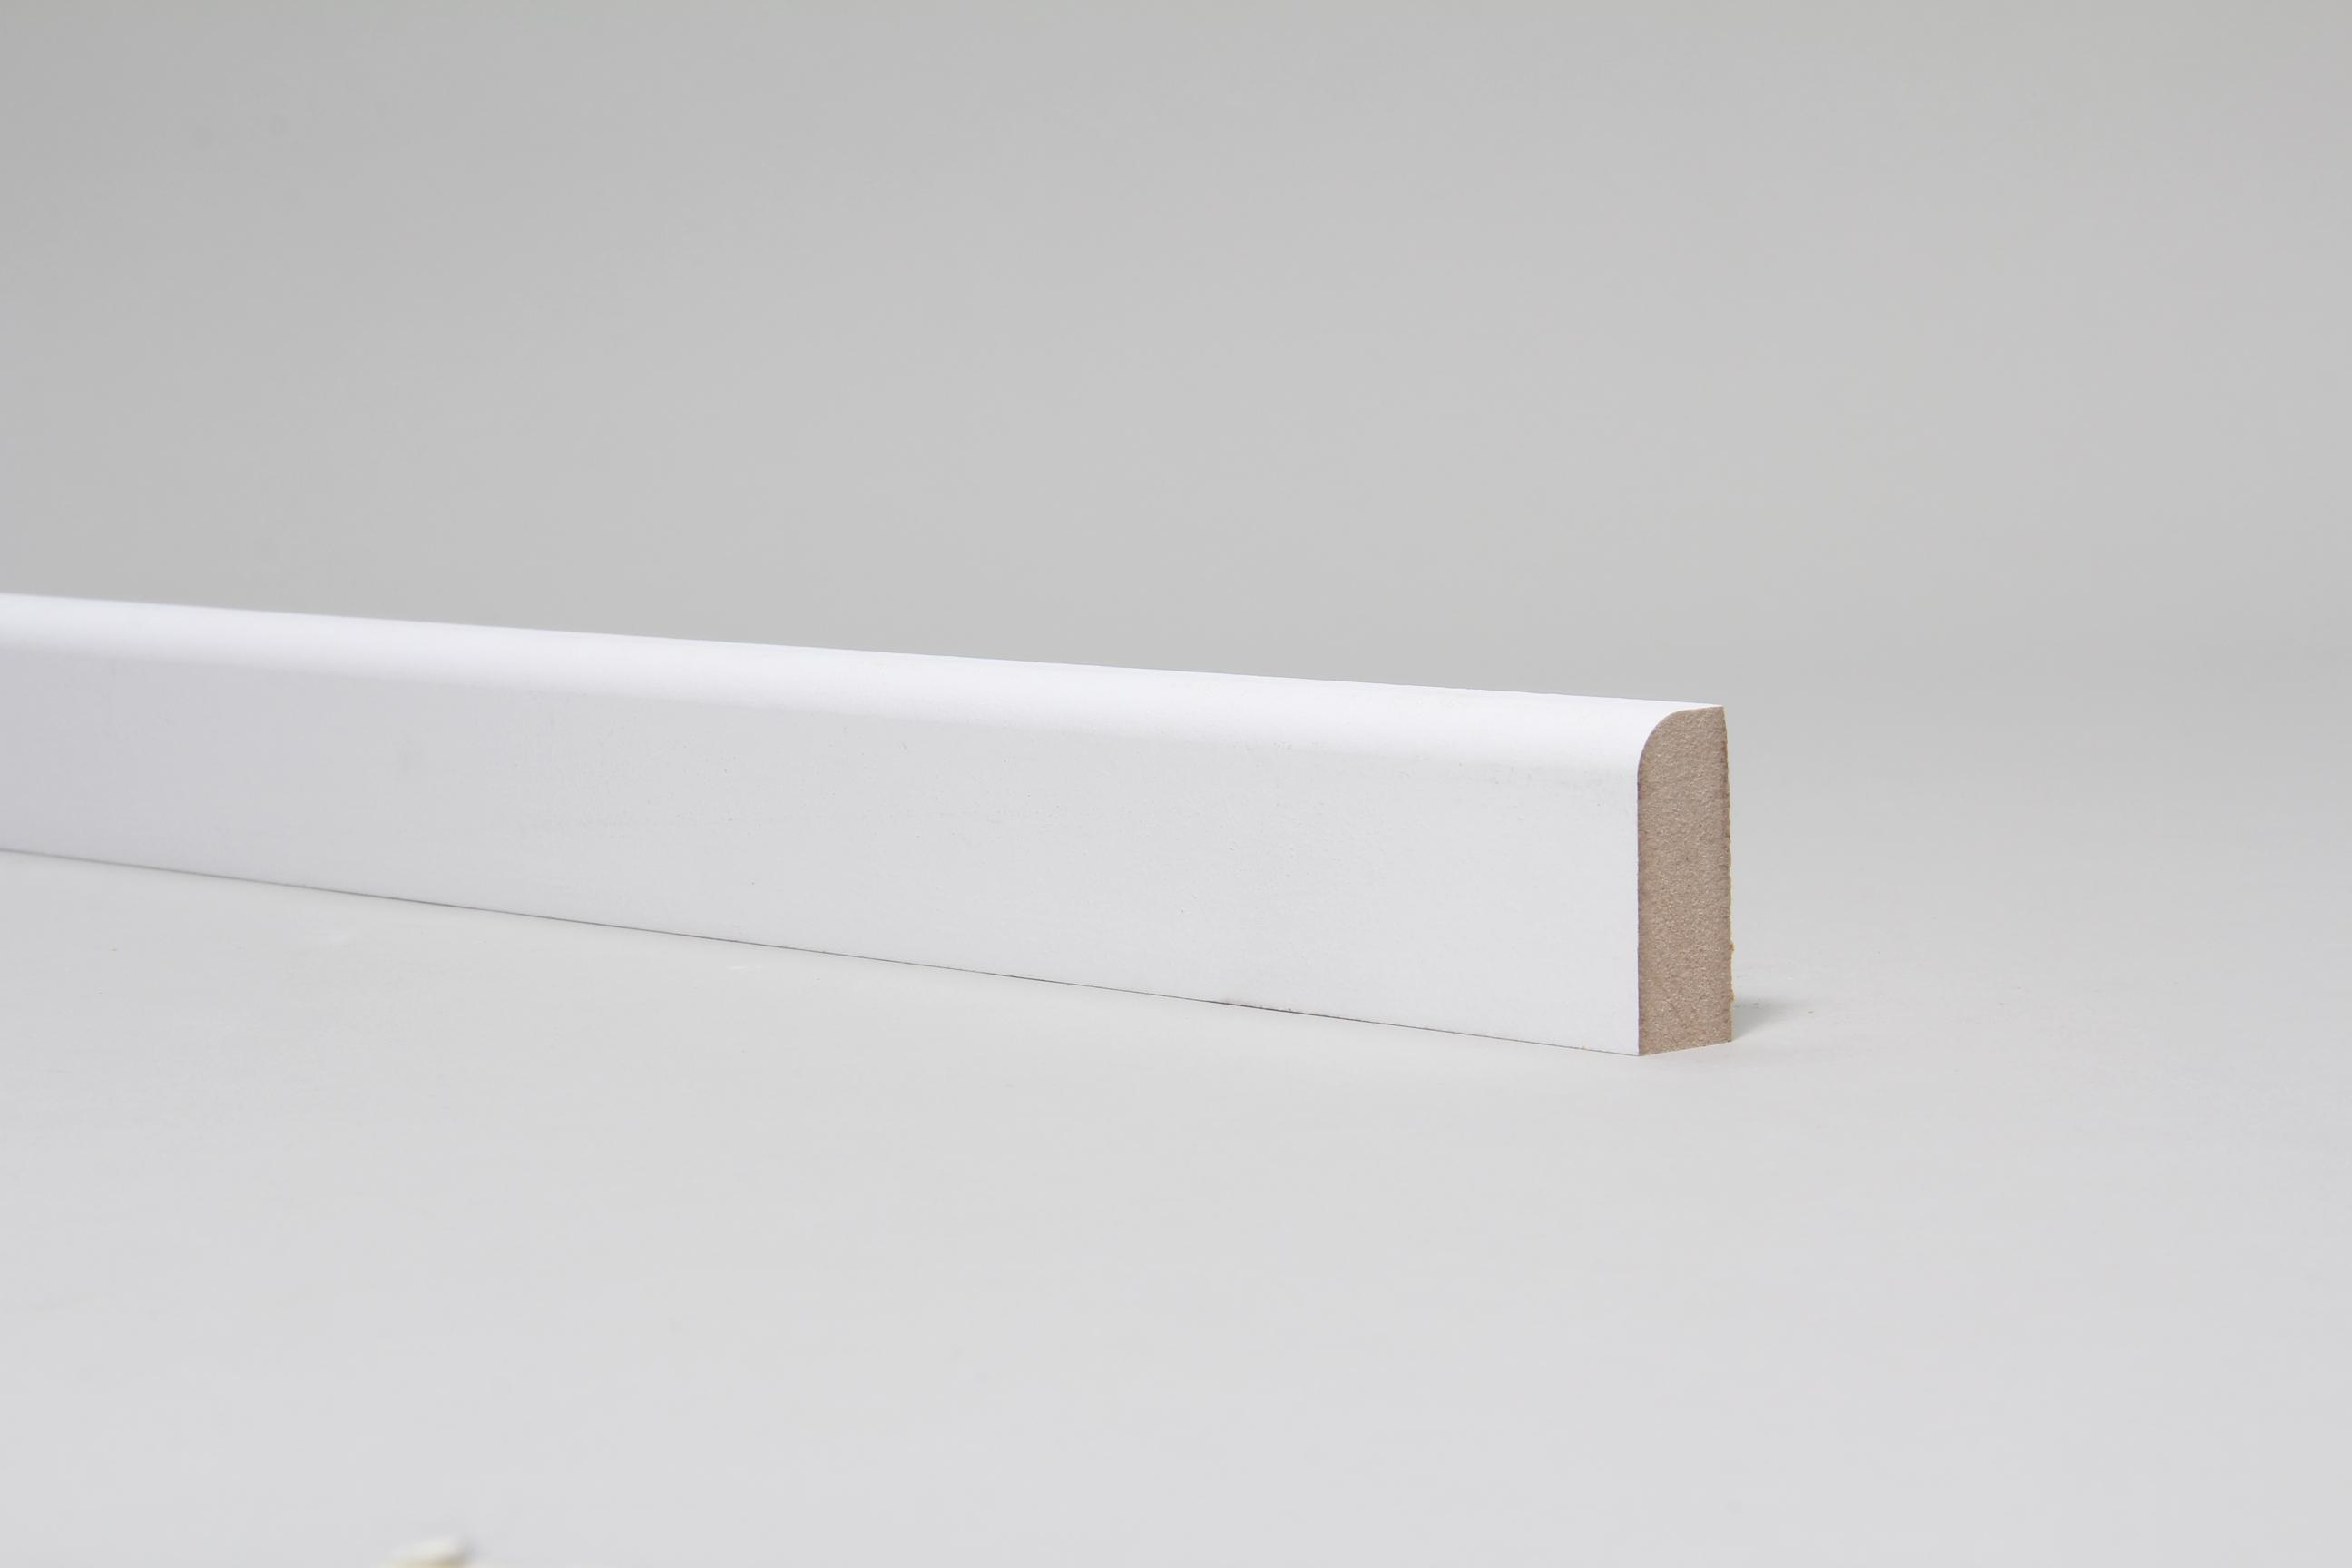 Rounded One Edge 18mm x 44mm Architrave Set Primed Set